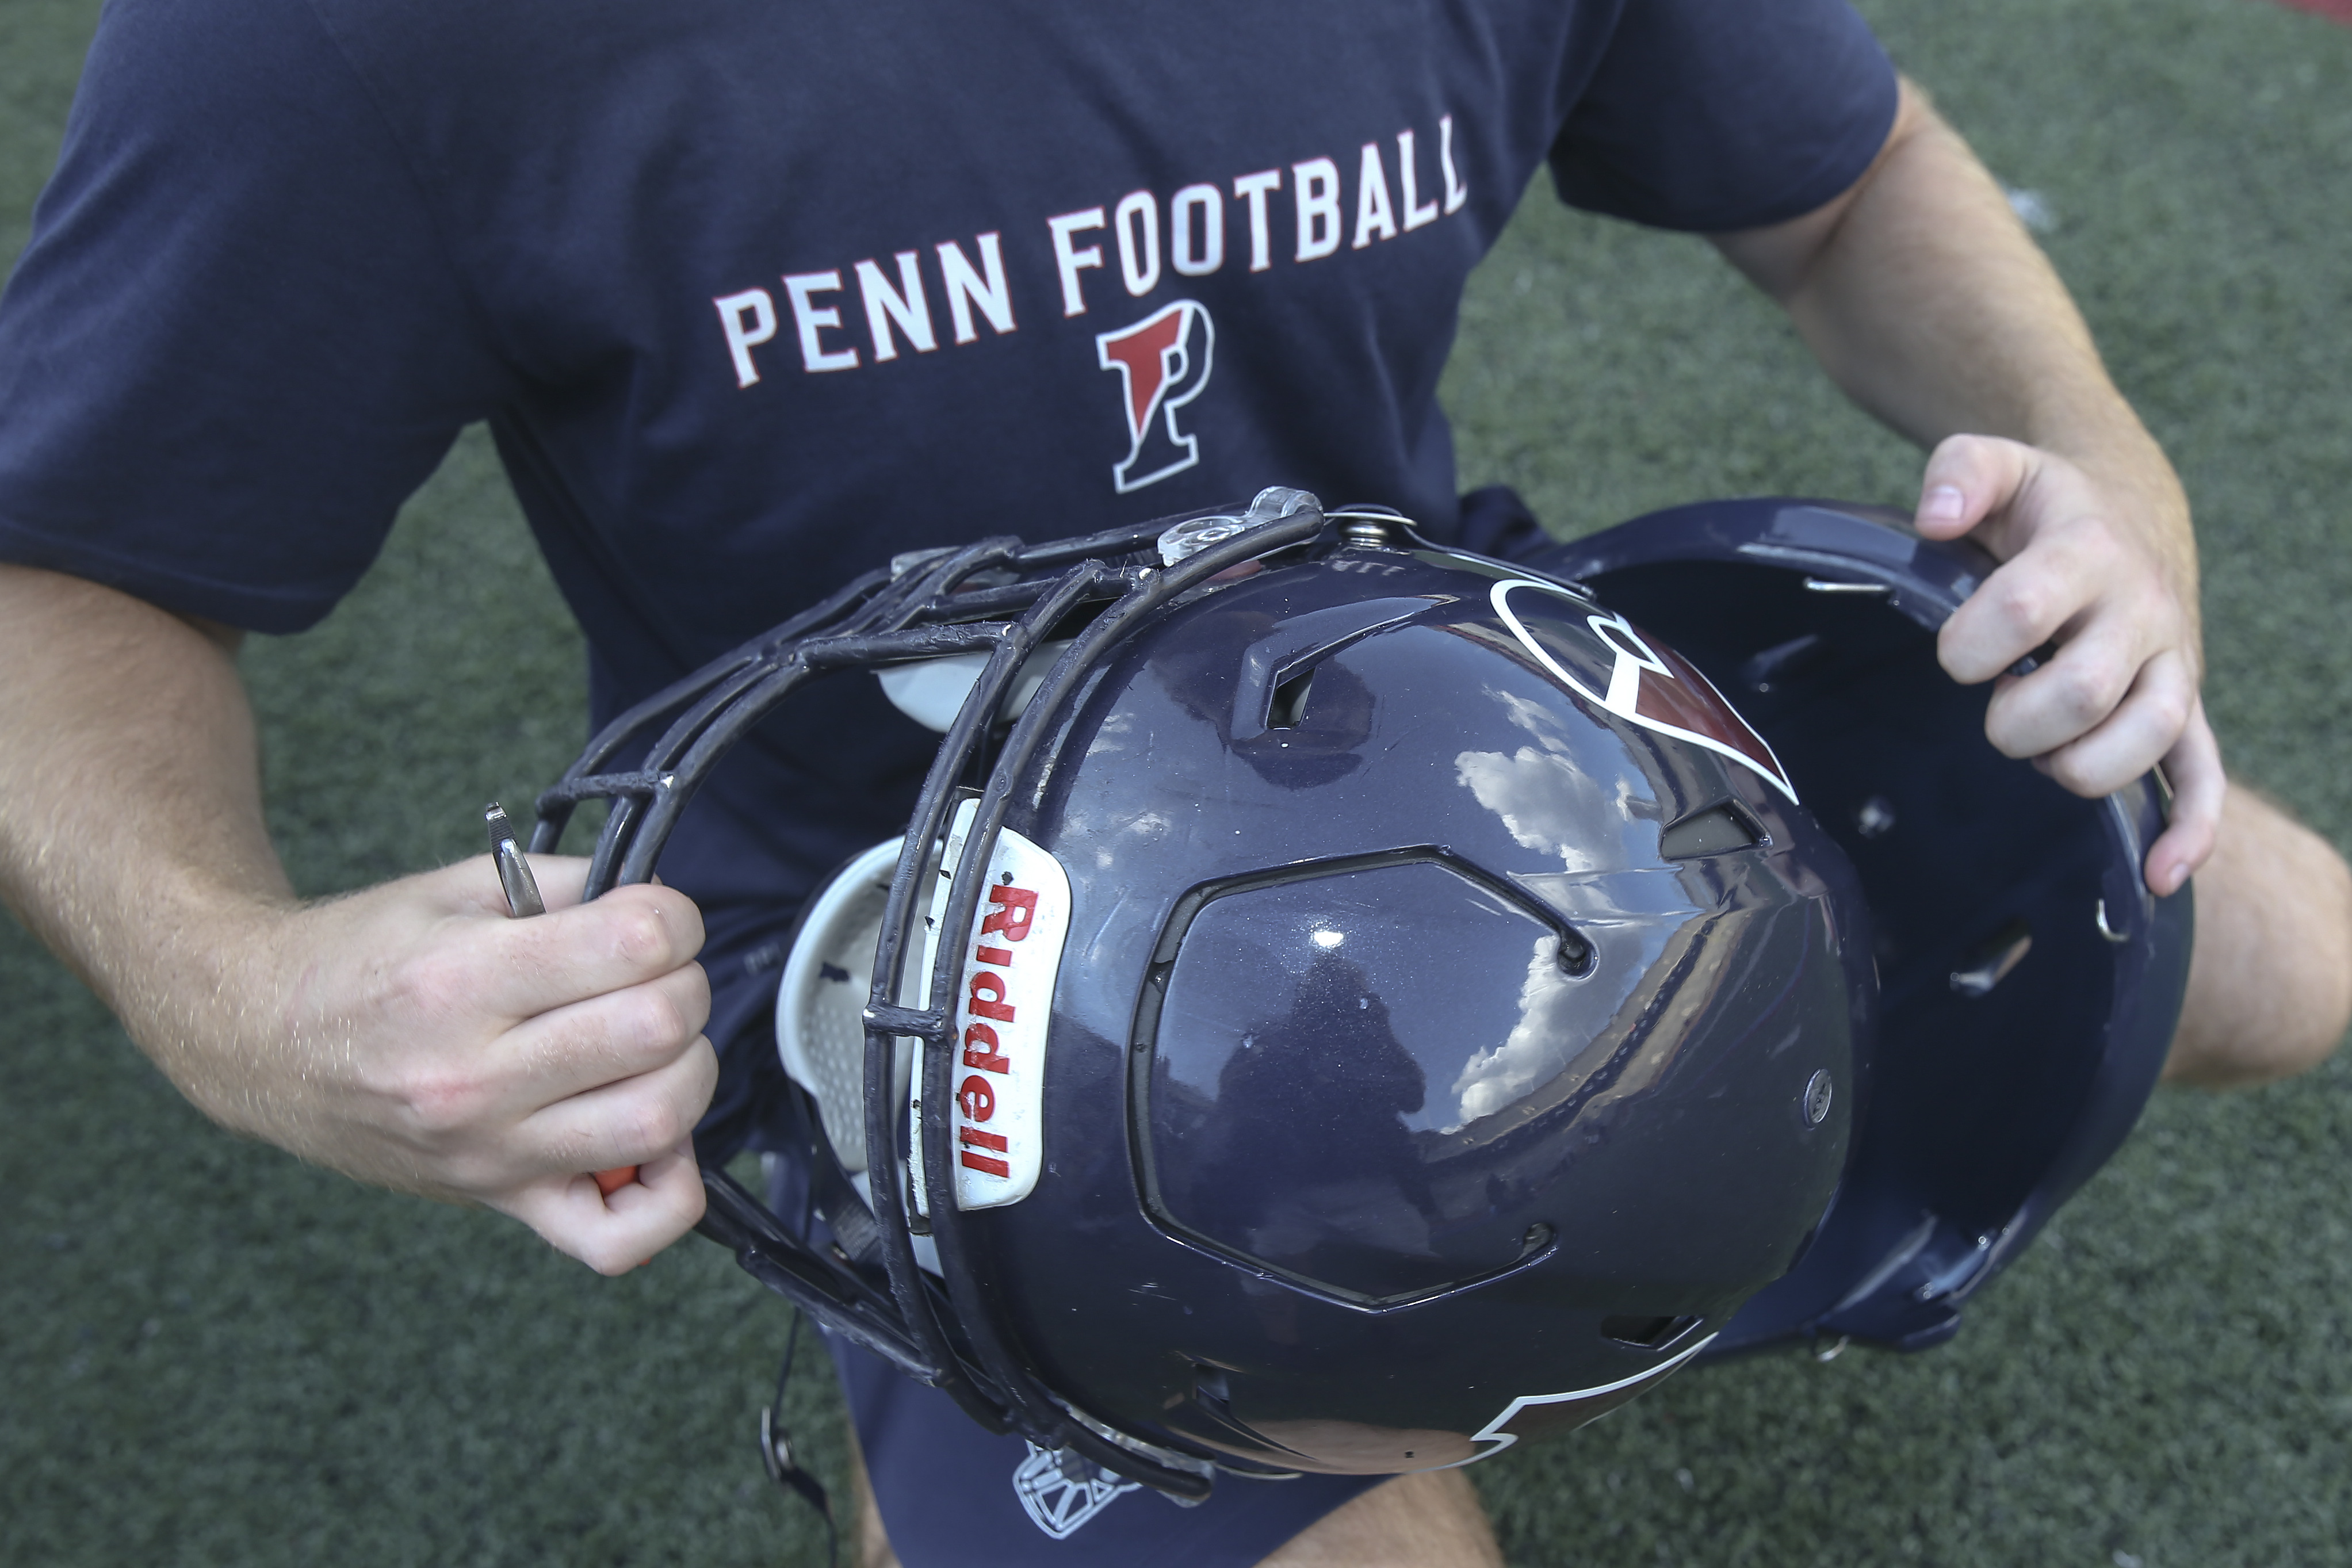 Penn�s assistant equipment manger Tyler Piccotti shows how the helmet cover comes apart after practice at Franklin Field, Thursday, August 30, 2018. STEVEN M. FALK / Staff Photographer